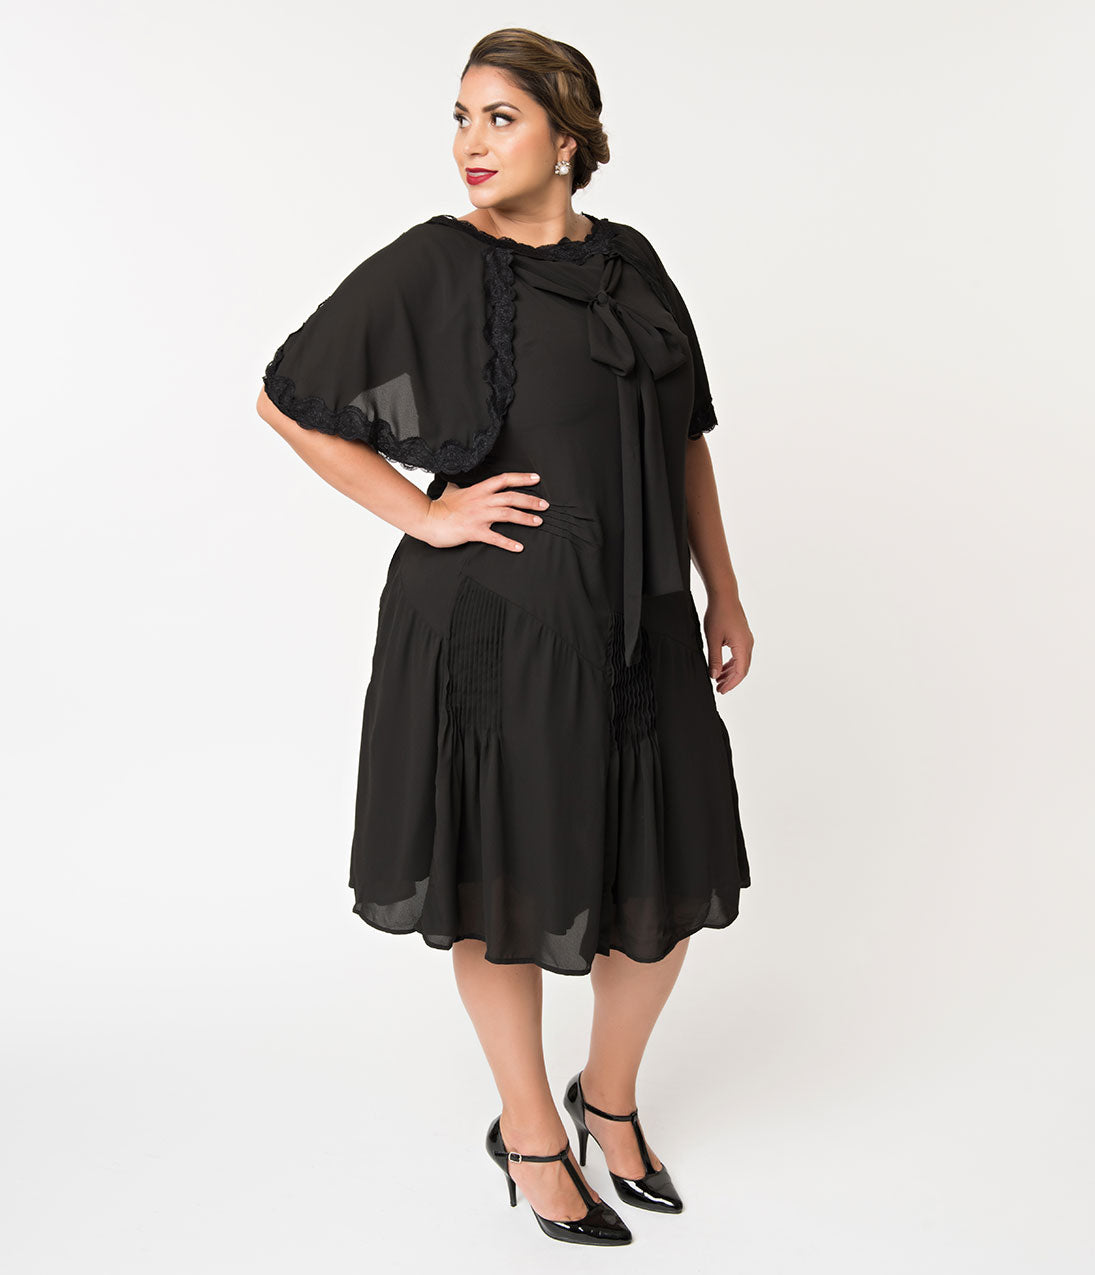 1930s Art Deco Plus Size Dresses | Tea Dresses, Party Dresses Unique Vintage Plus Size 1930S Style Black Dewitt Day Flapper Dress $110.00 AT vintagedancer.com